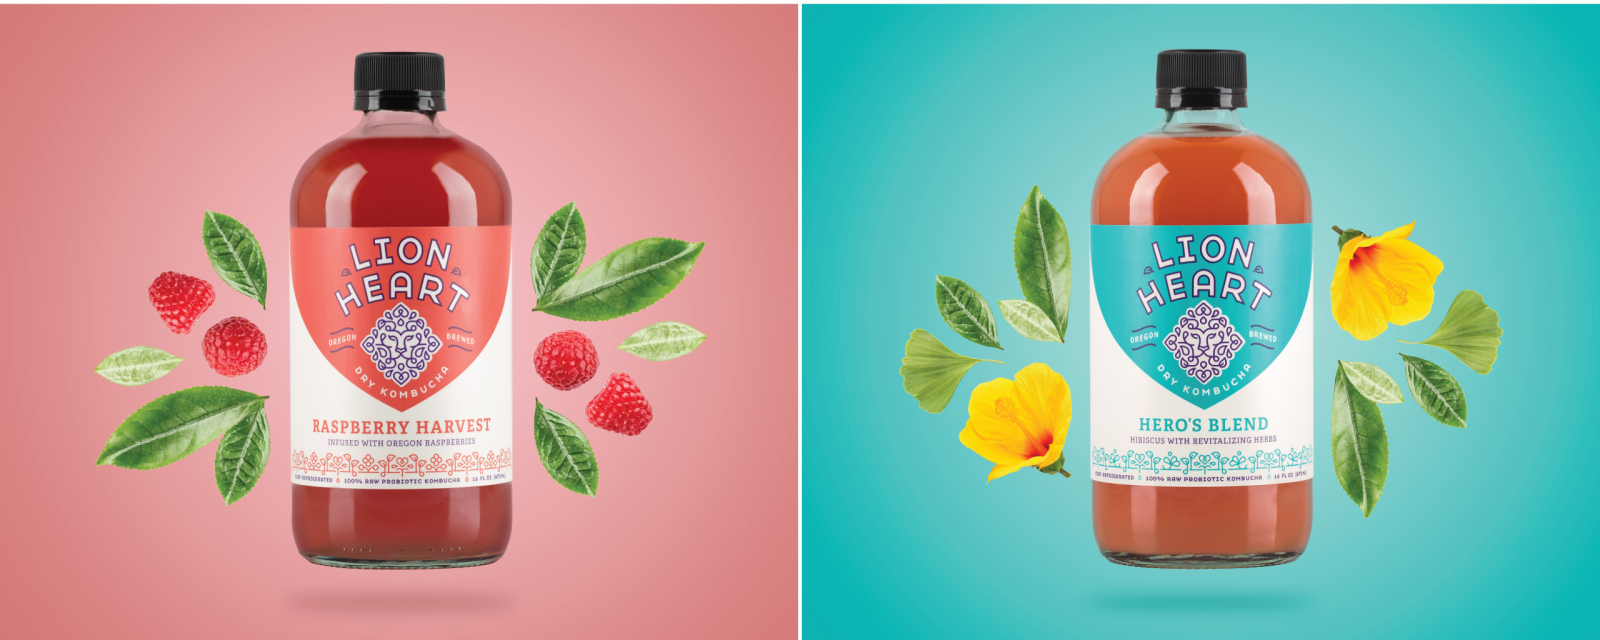 Lion Heart Kombucha Packaging Design